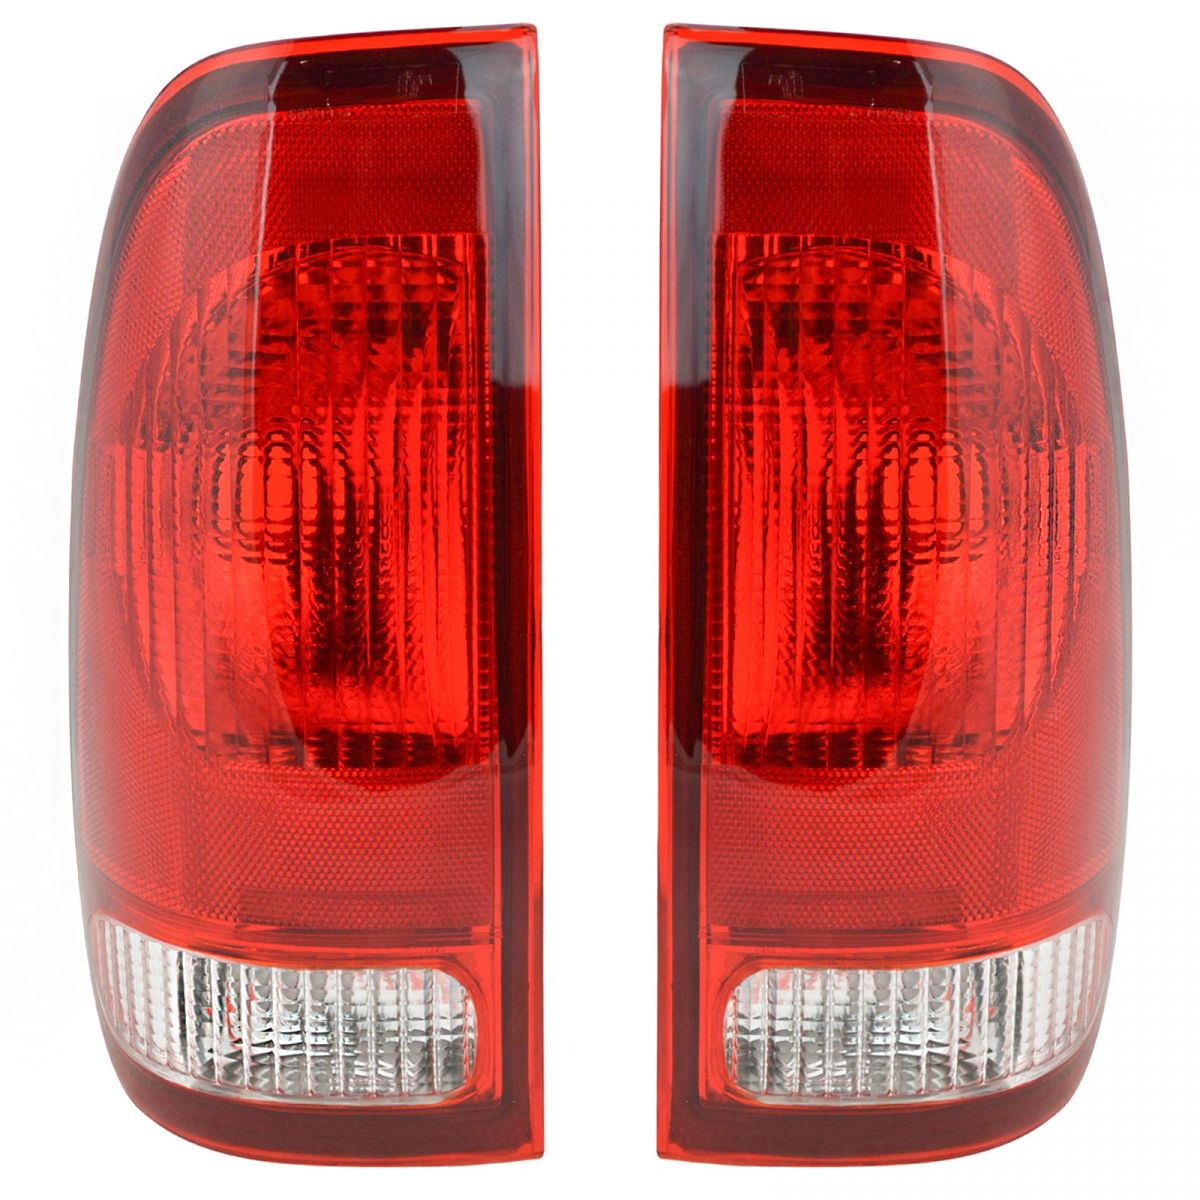 hight resolution of taillights taillamps rear brake lights pair set new for ford f series truck